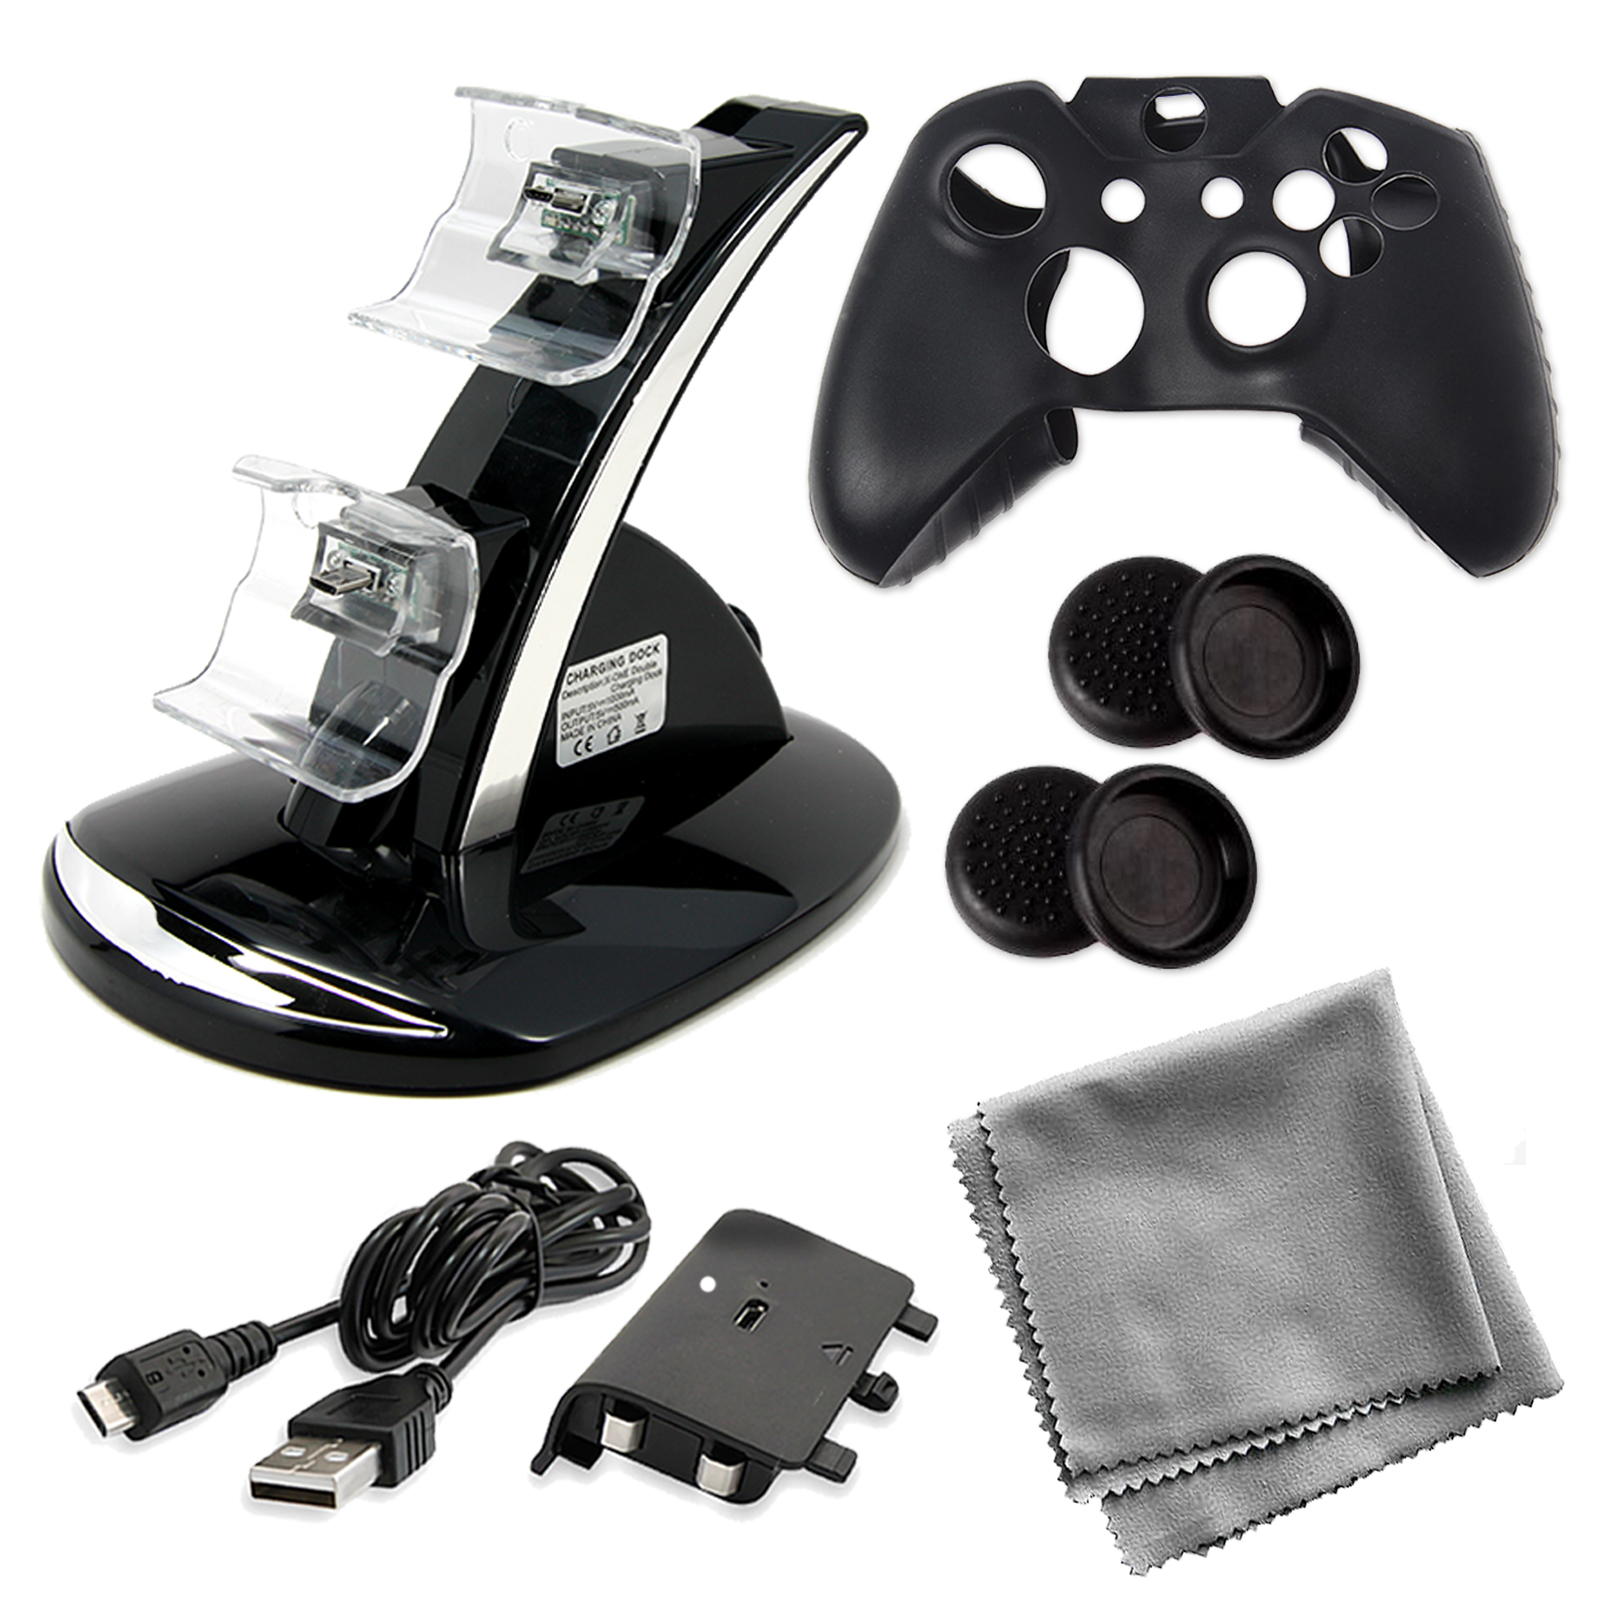 Gamefitz 8 In 1 Kit For Xbox One